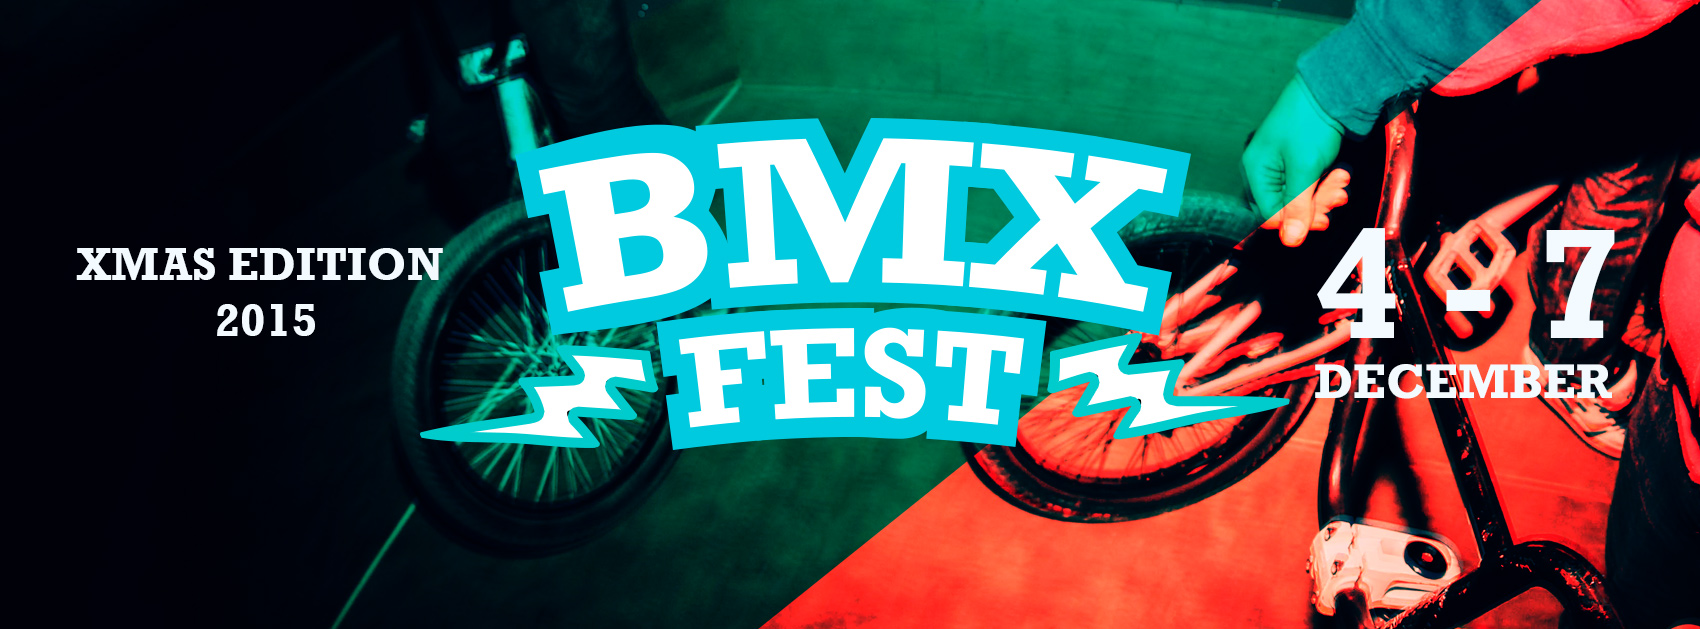 BMX Fest – Xmas Edition 2015 Photos